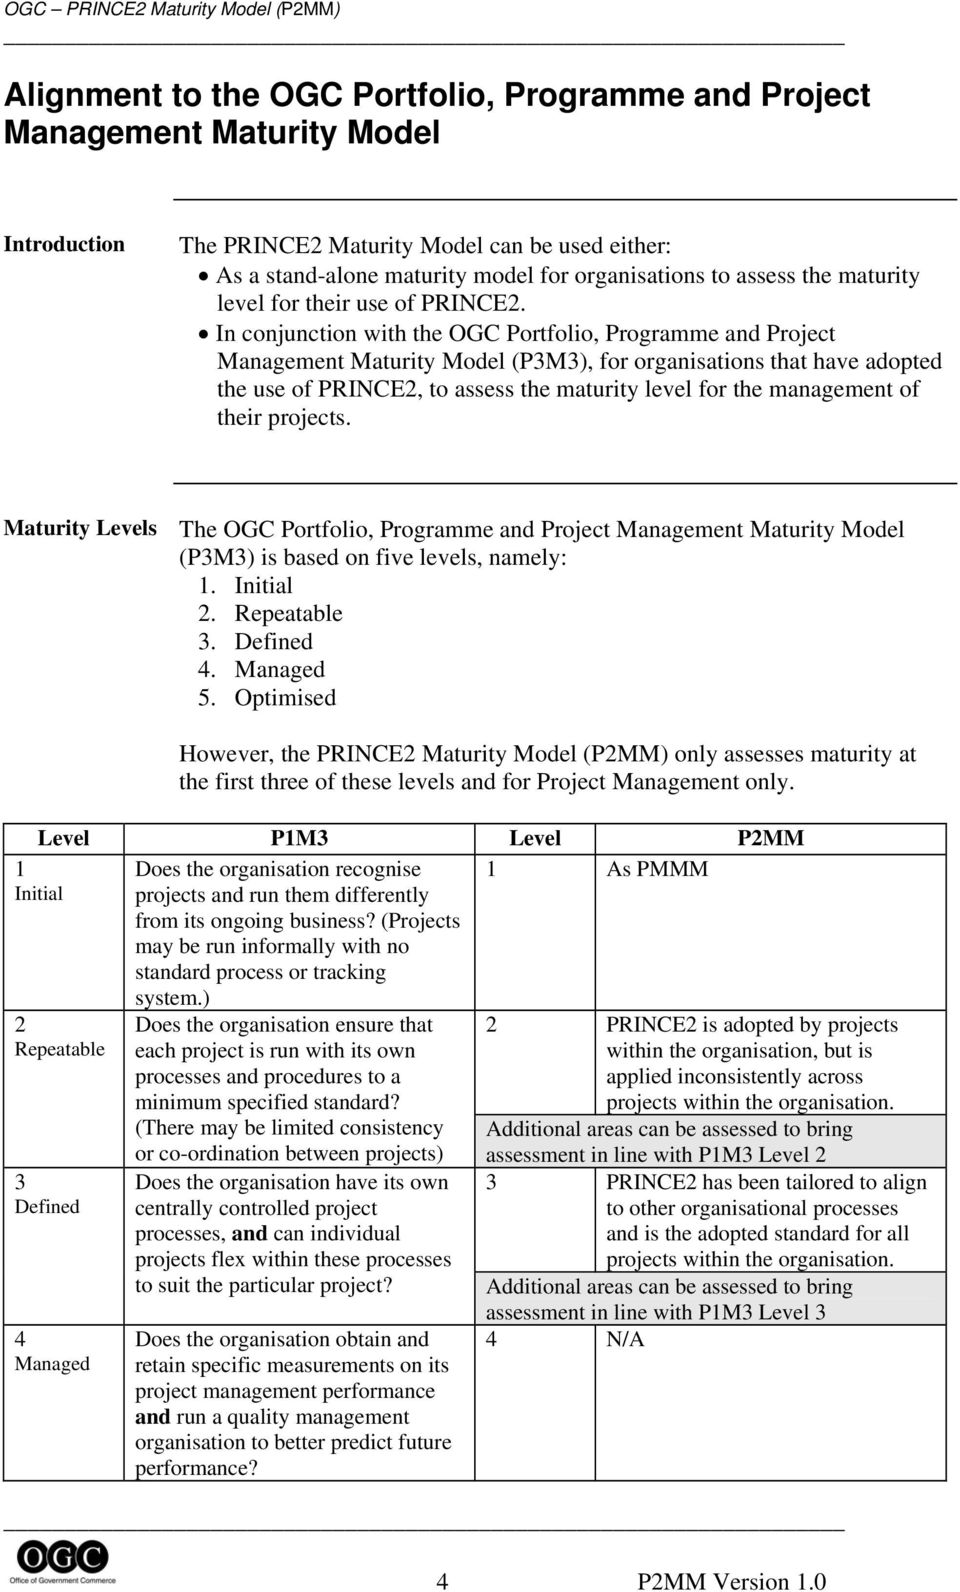 In conjunction with the OGC Portfolio, Programme and Project Management Maturity Model (P3M3), for organisations that have adopted the use of PRINCE2, to assess the maturity level for the management